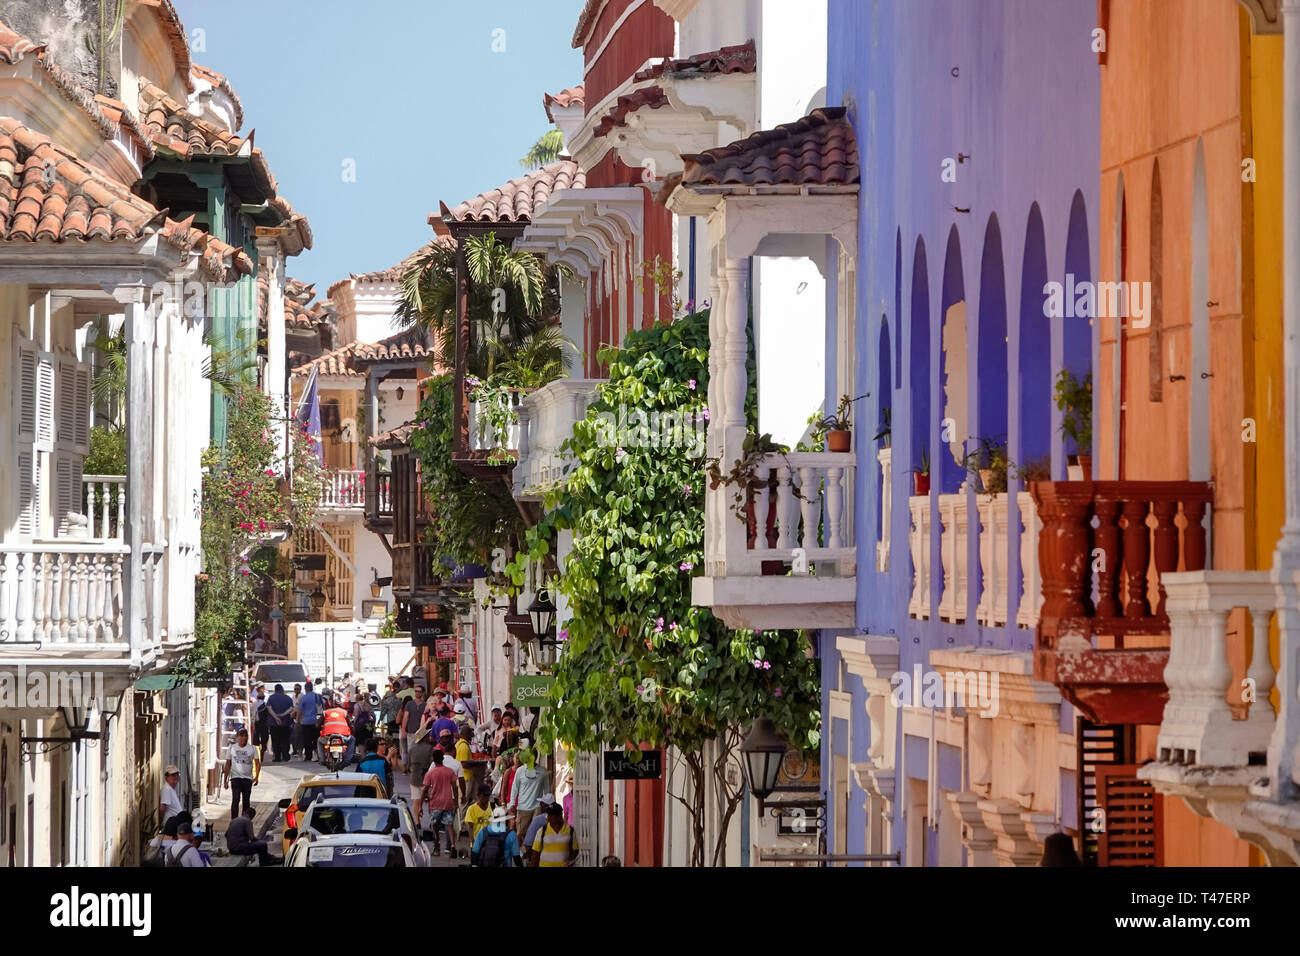 Cartagena Colombia Old Walled City Center centre Centro historic colonial architecture narrow street balconies busy - Stock Image